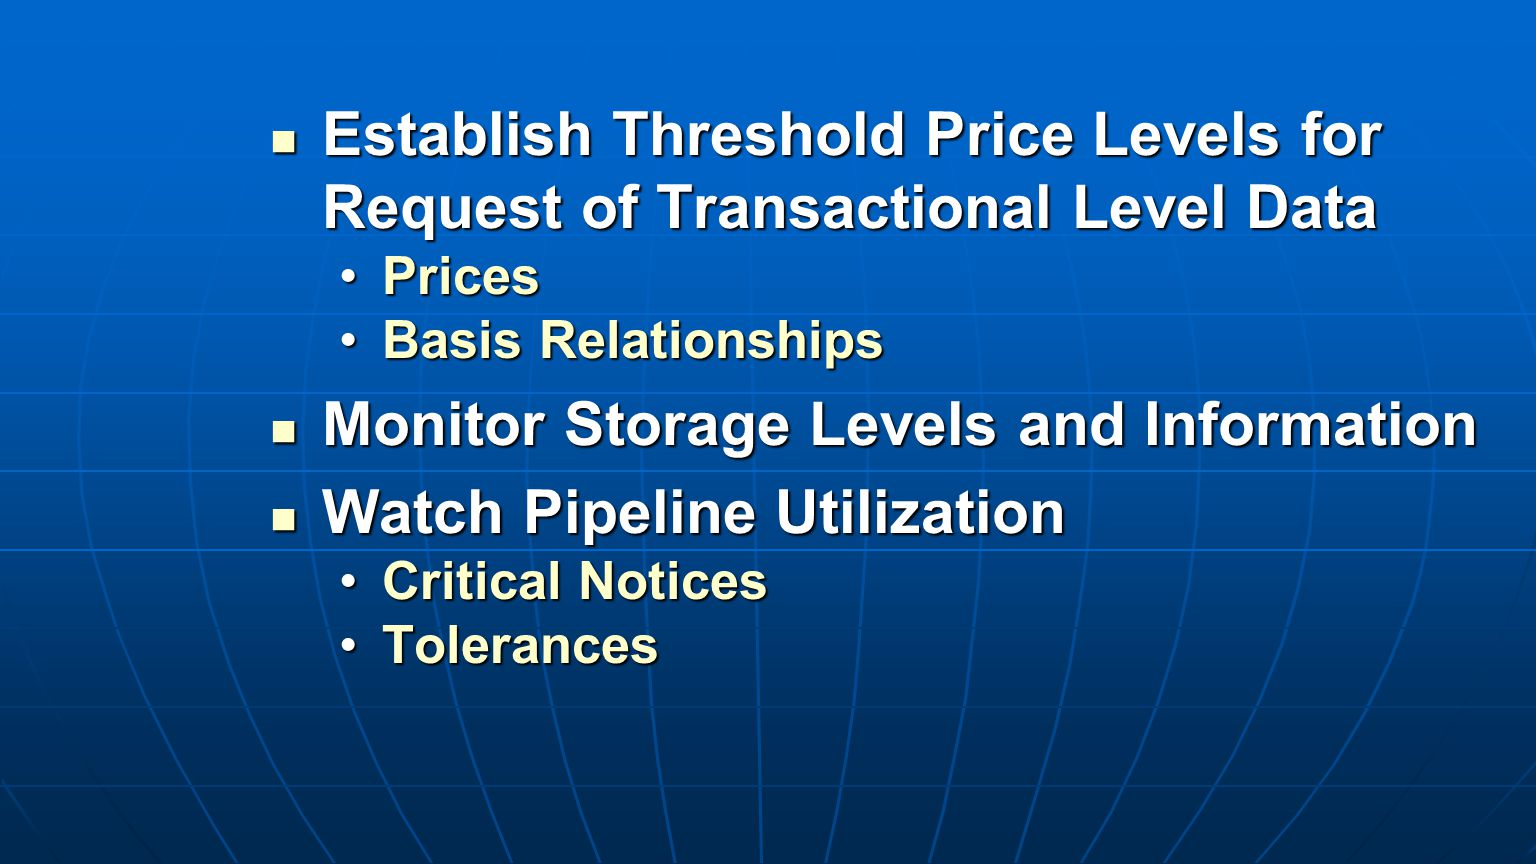 Establish Threshold Price Levels for Request of Transactional Level Data Establish Threshold Price Levels for Request of Transactional Level Data PricesPrices Basis RelationshipsBasis Relationships Monitor Storage Levels and Information Monitor Storage Levels and Information Watch Pipeline Utilization Watch Pipeline Utilization Critical NoticesCritical Notices TolerancesTolerances